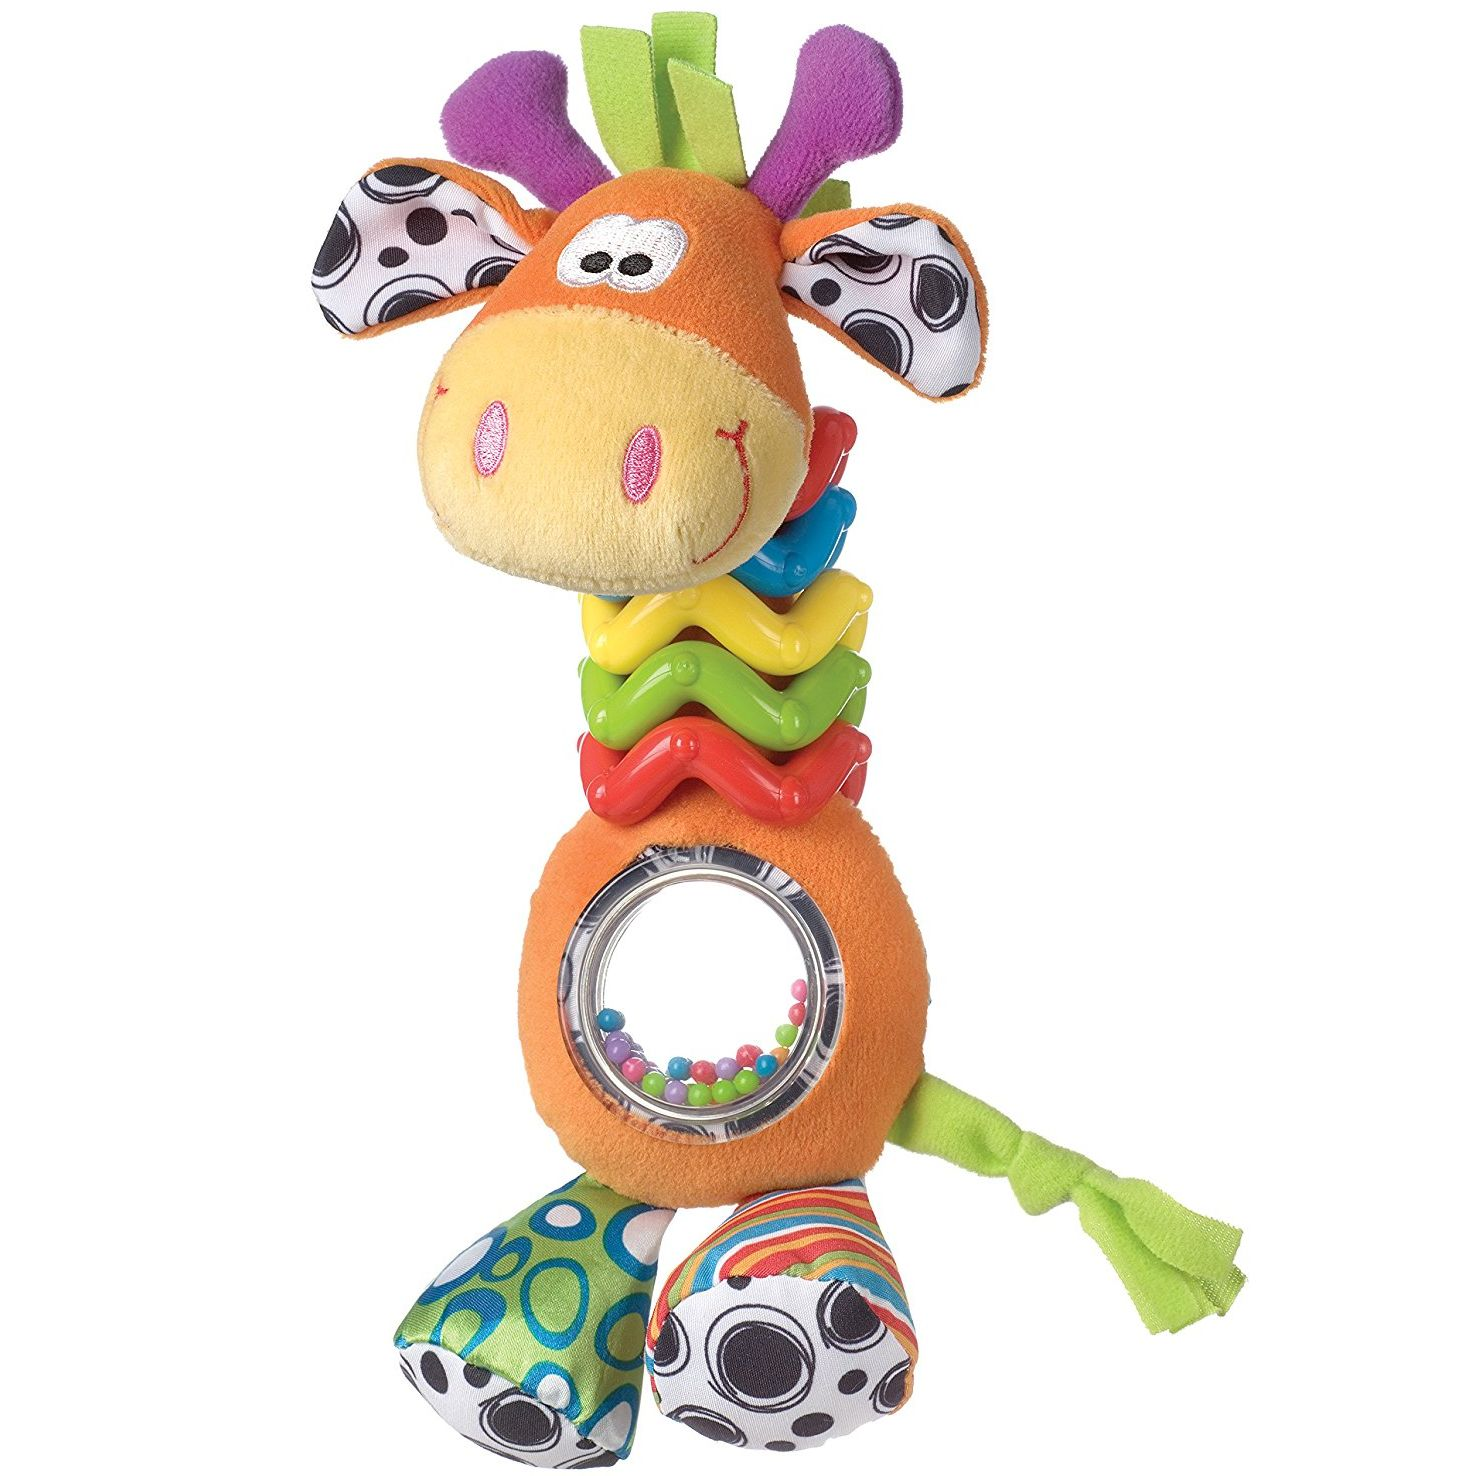 Playgro My First Bead Buddies Baby Toy